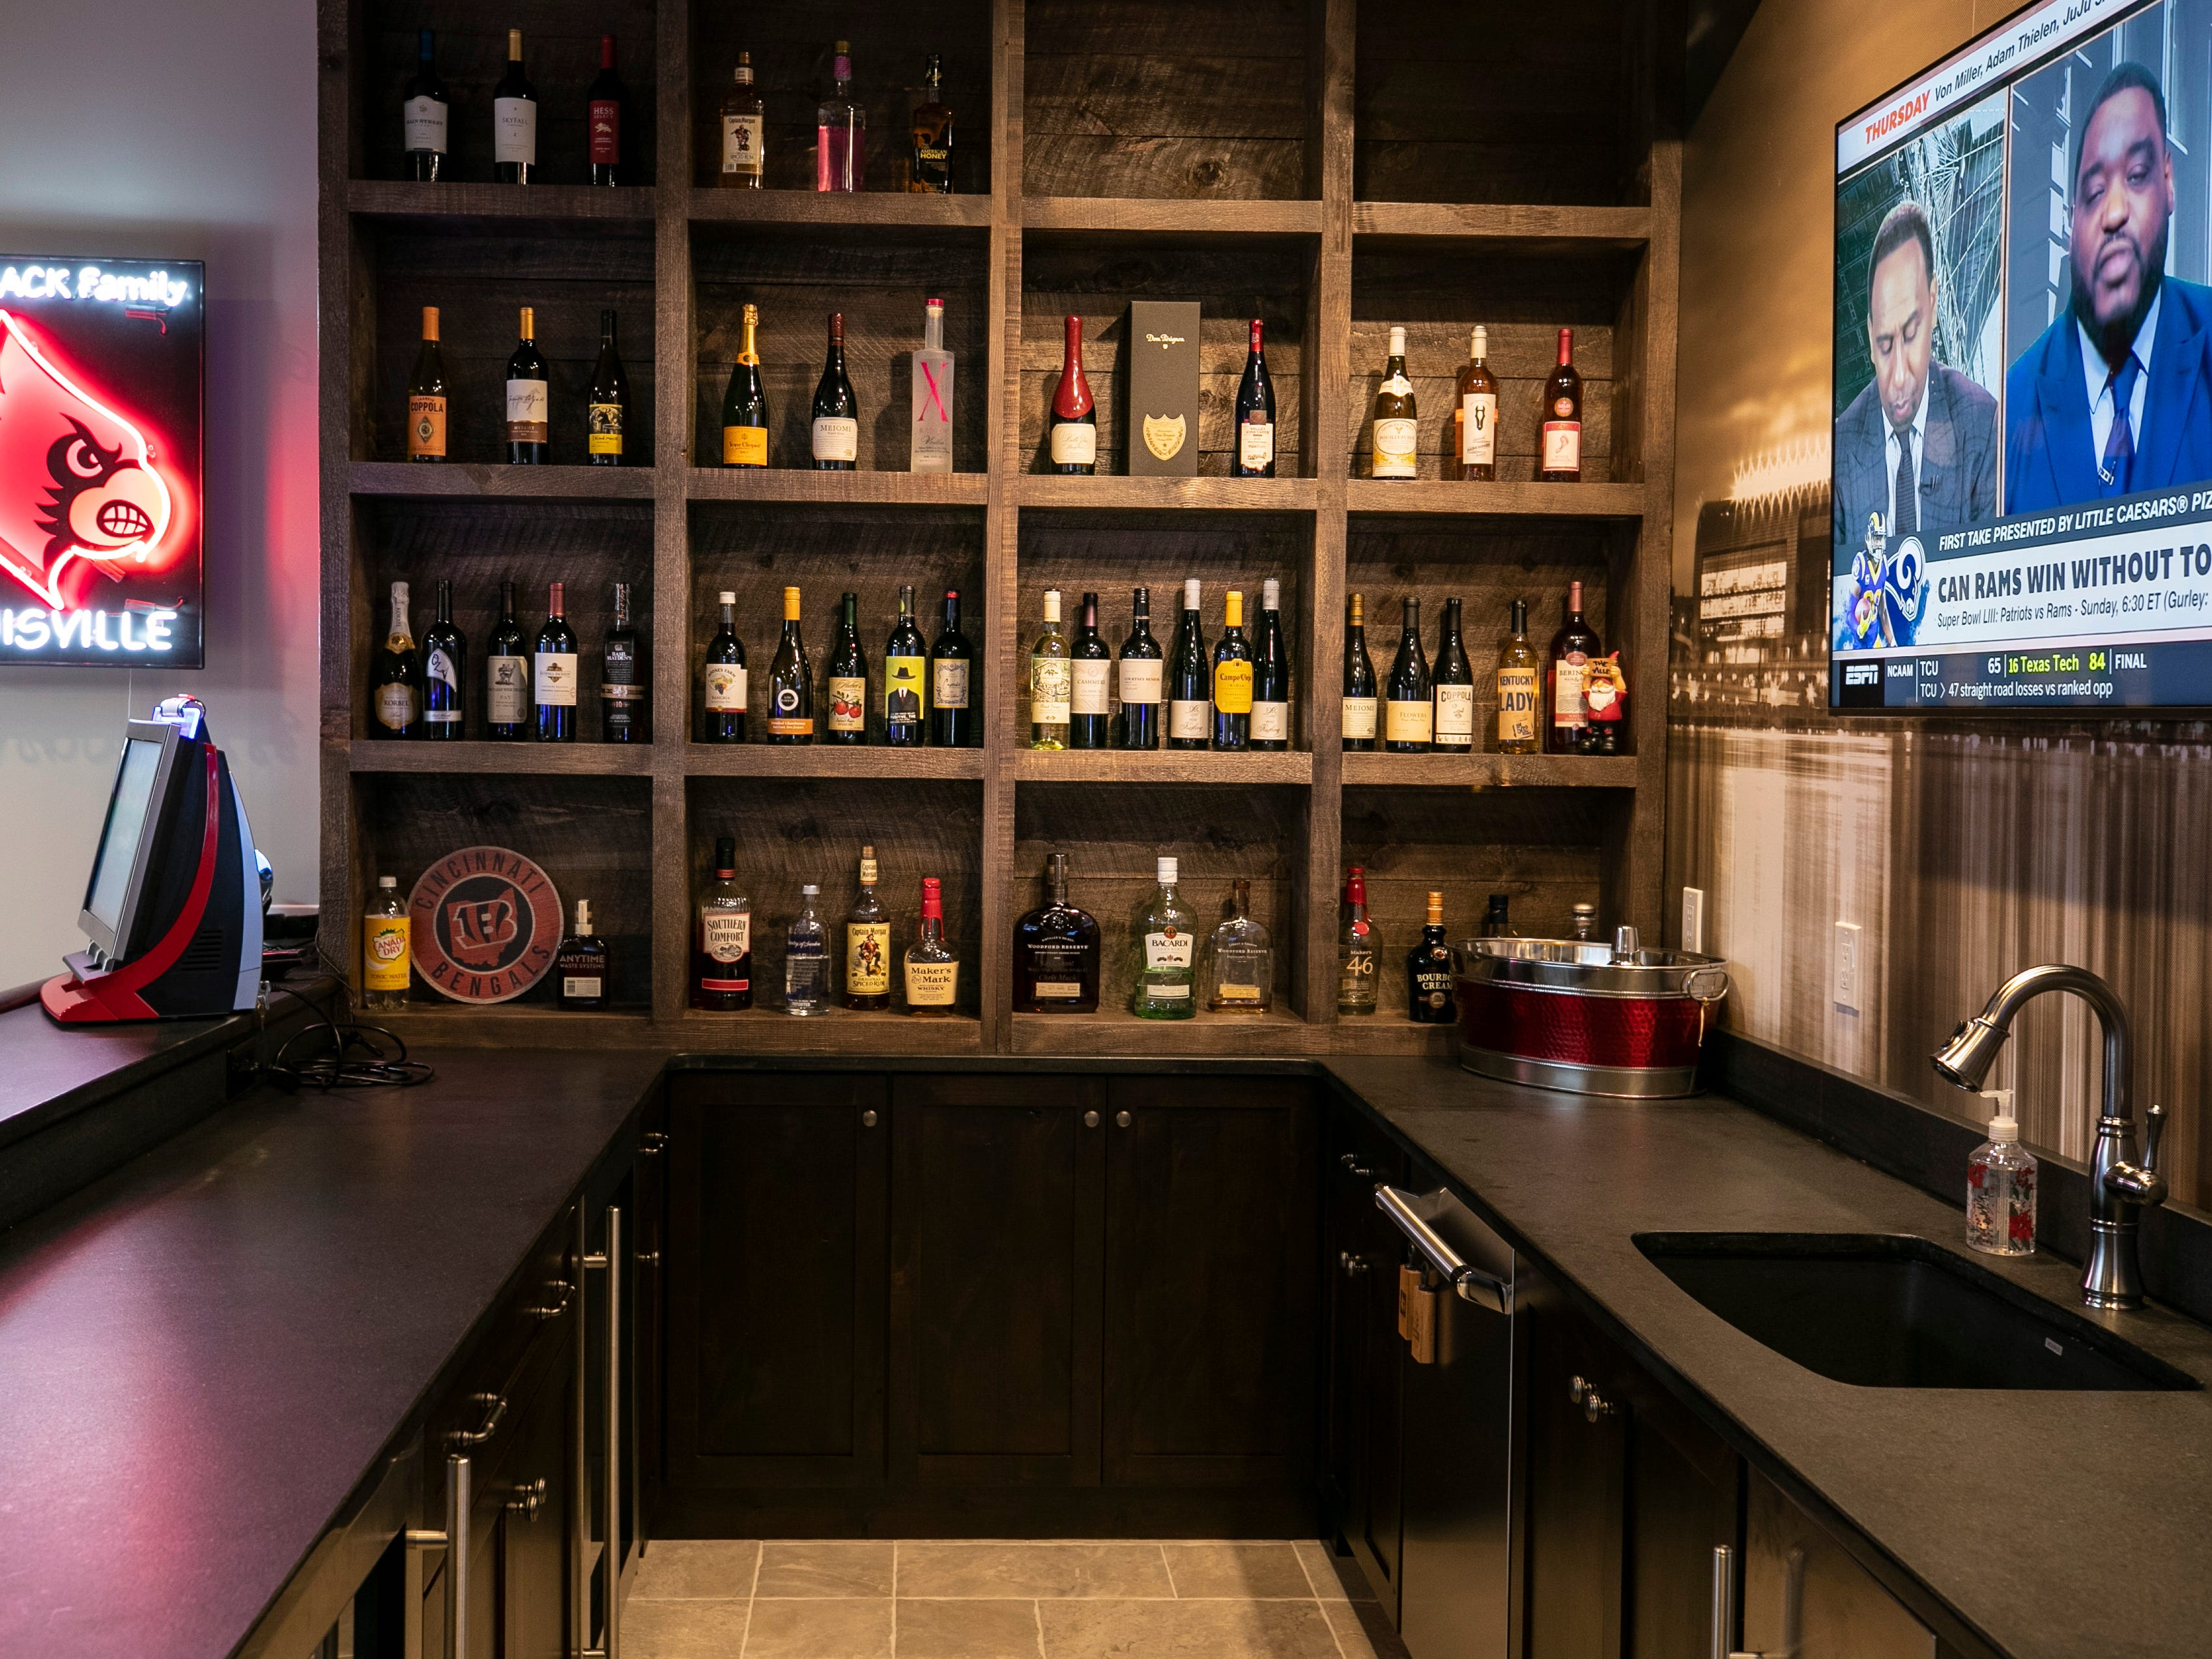 The basement of the Mack home features a bar with plenty of choices from bourbon to wine as well as plenty of seats.